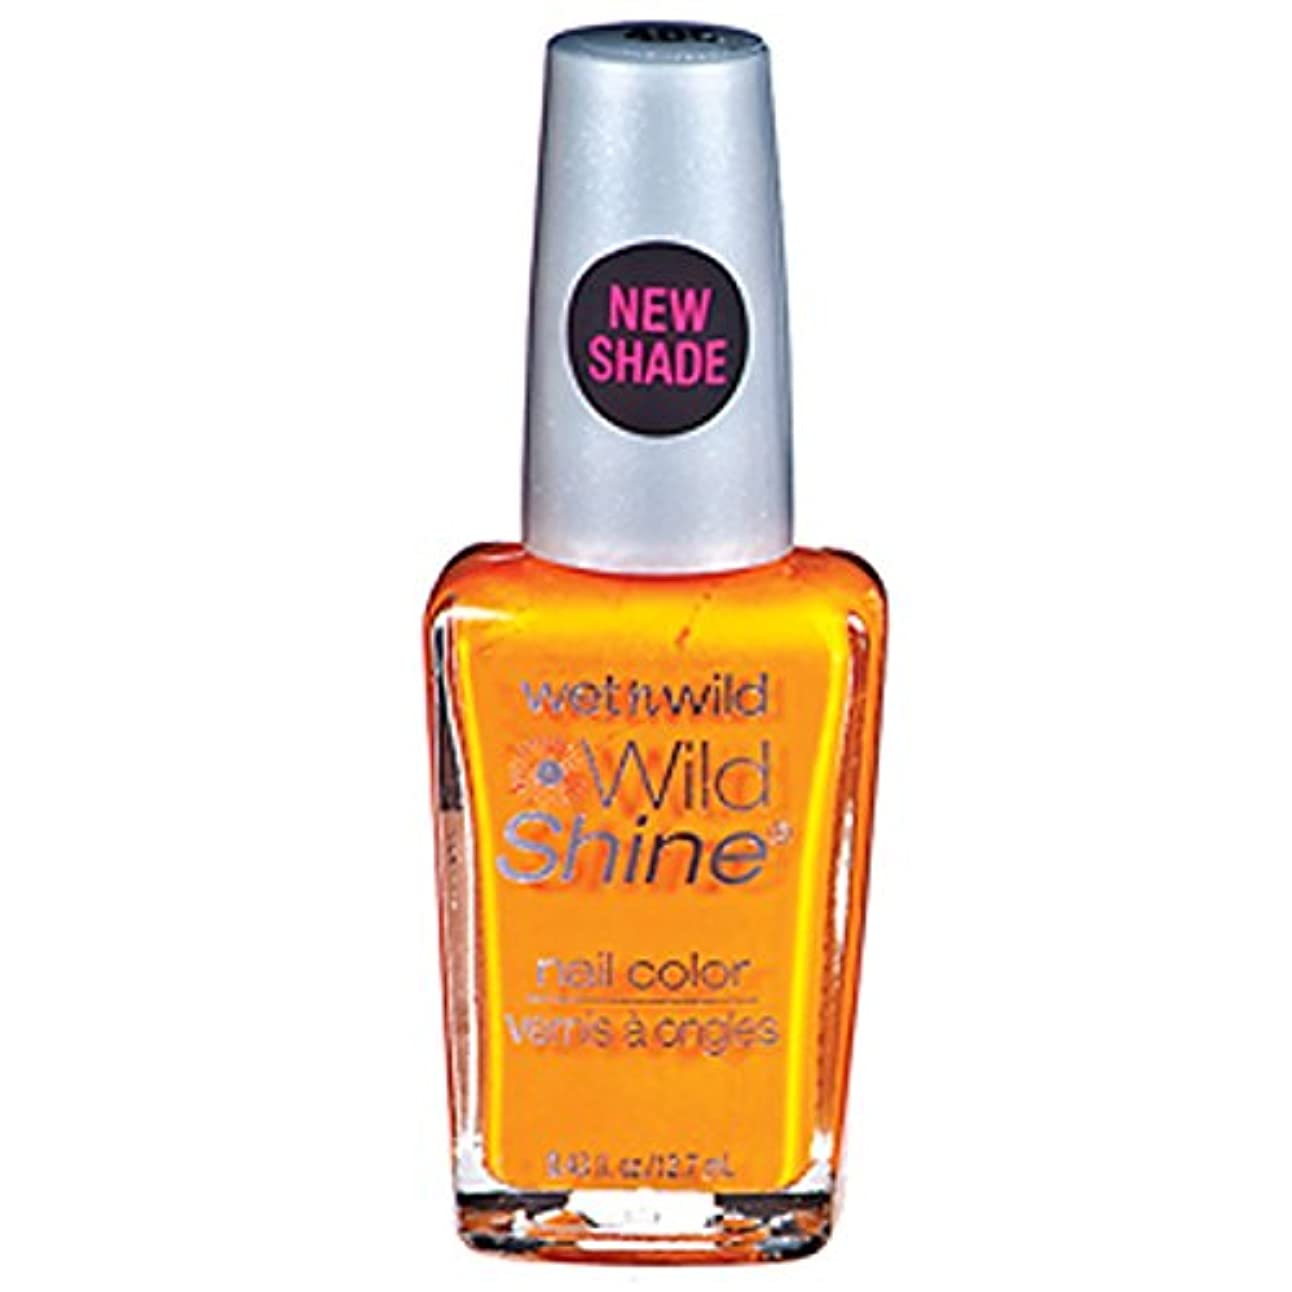 WET N WILD Wild Shine Nail Color - Sunny Side Up